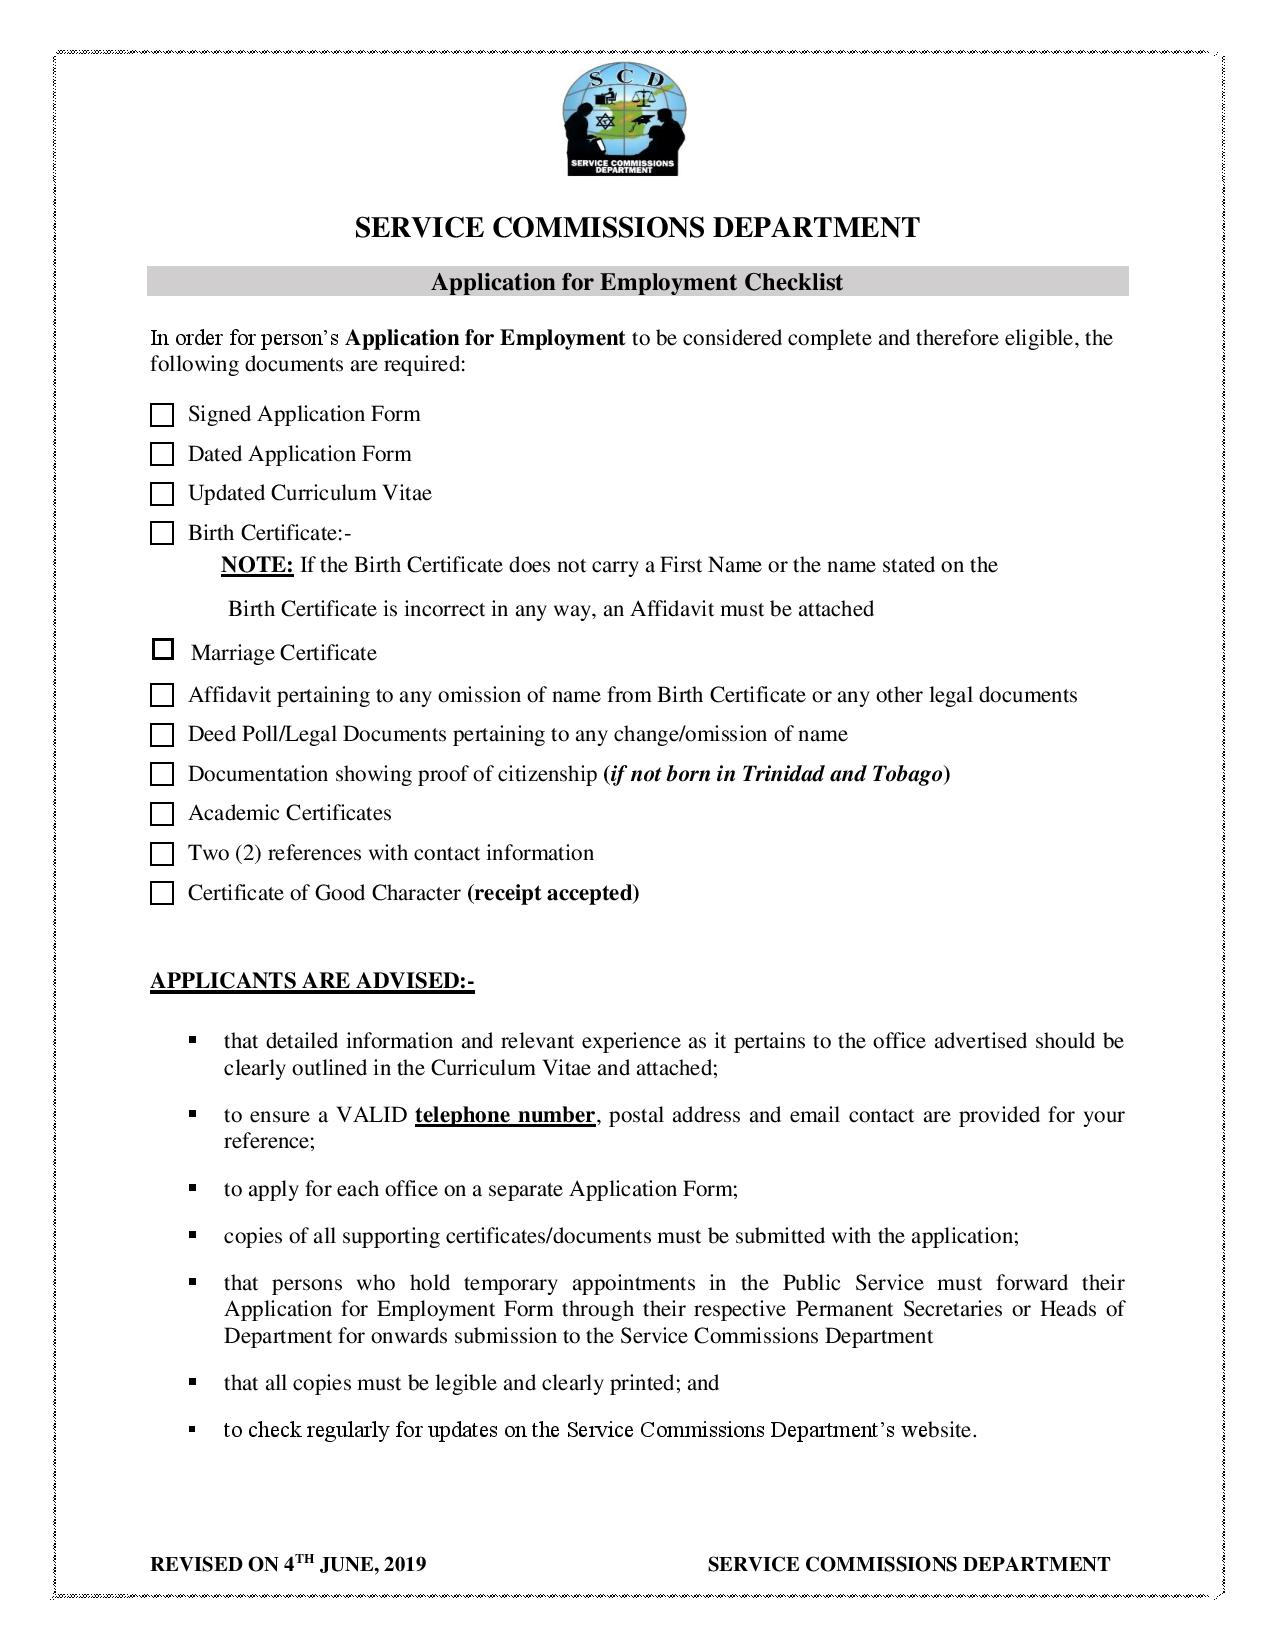 Application for Employment Checklist